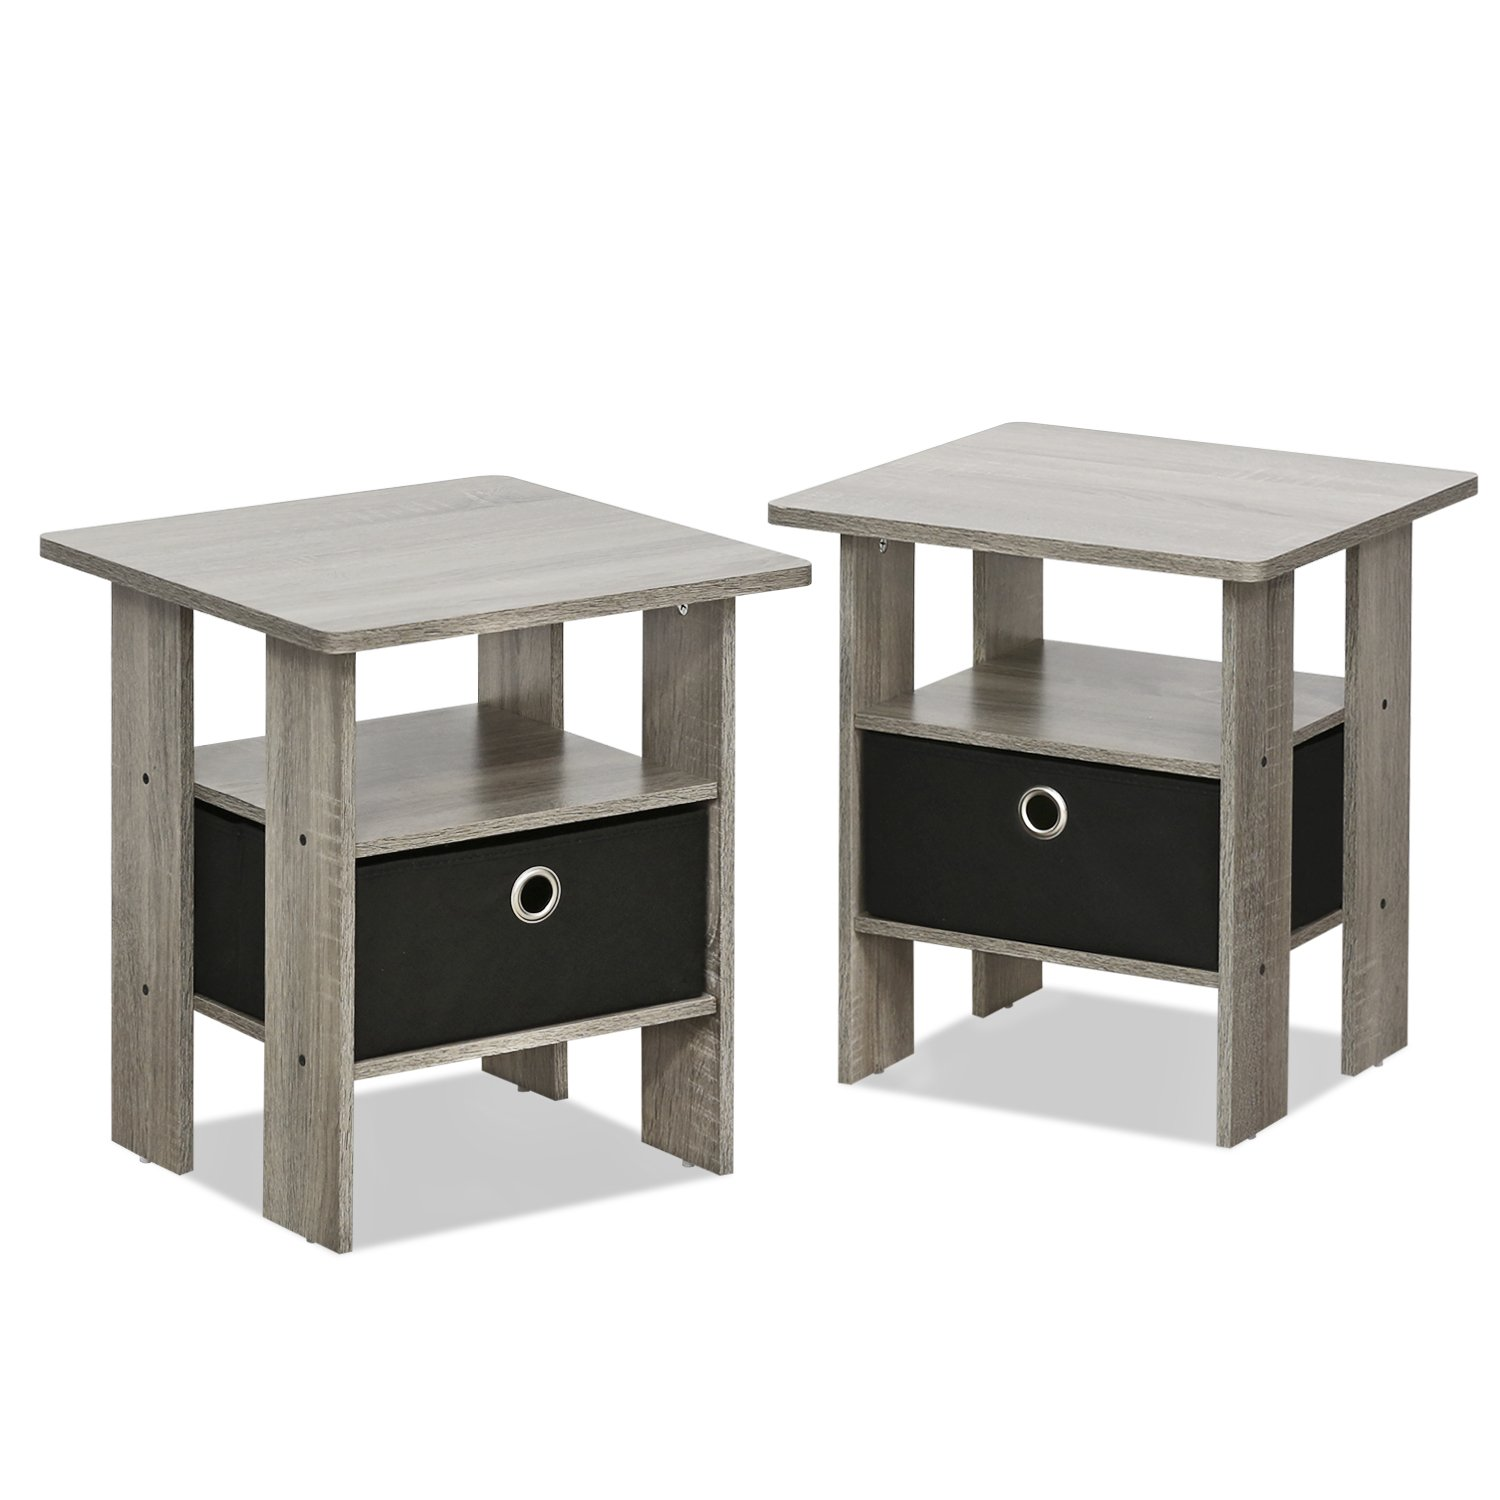 French Oak Grey Style End Tables With Black Drawers Set Of